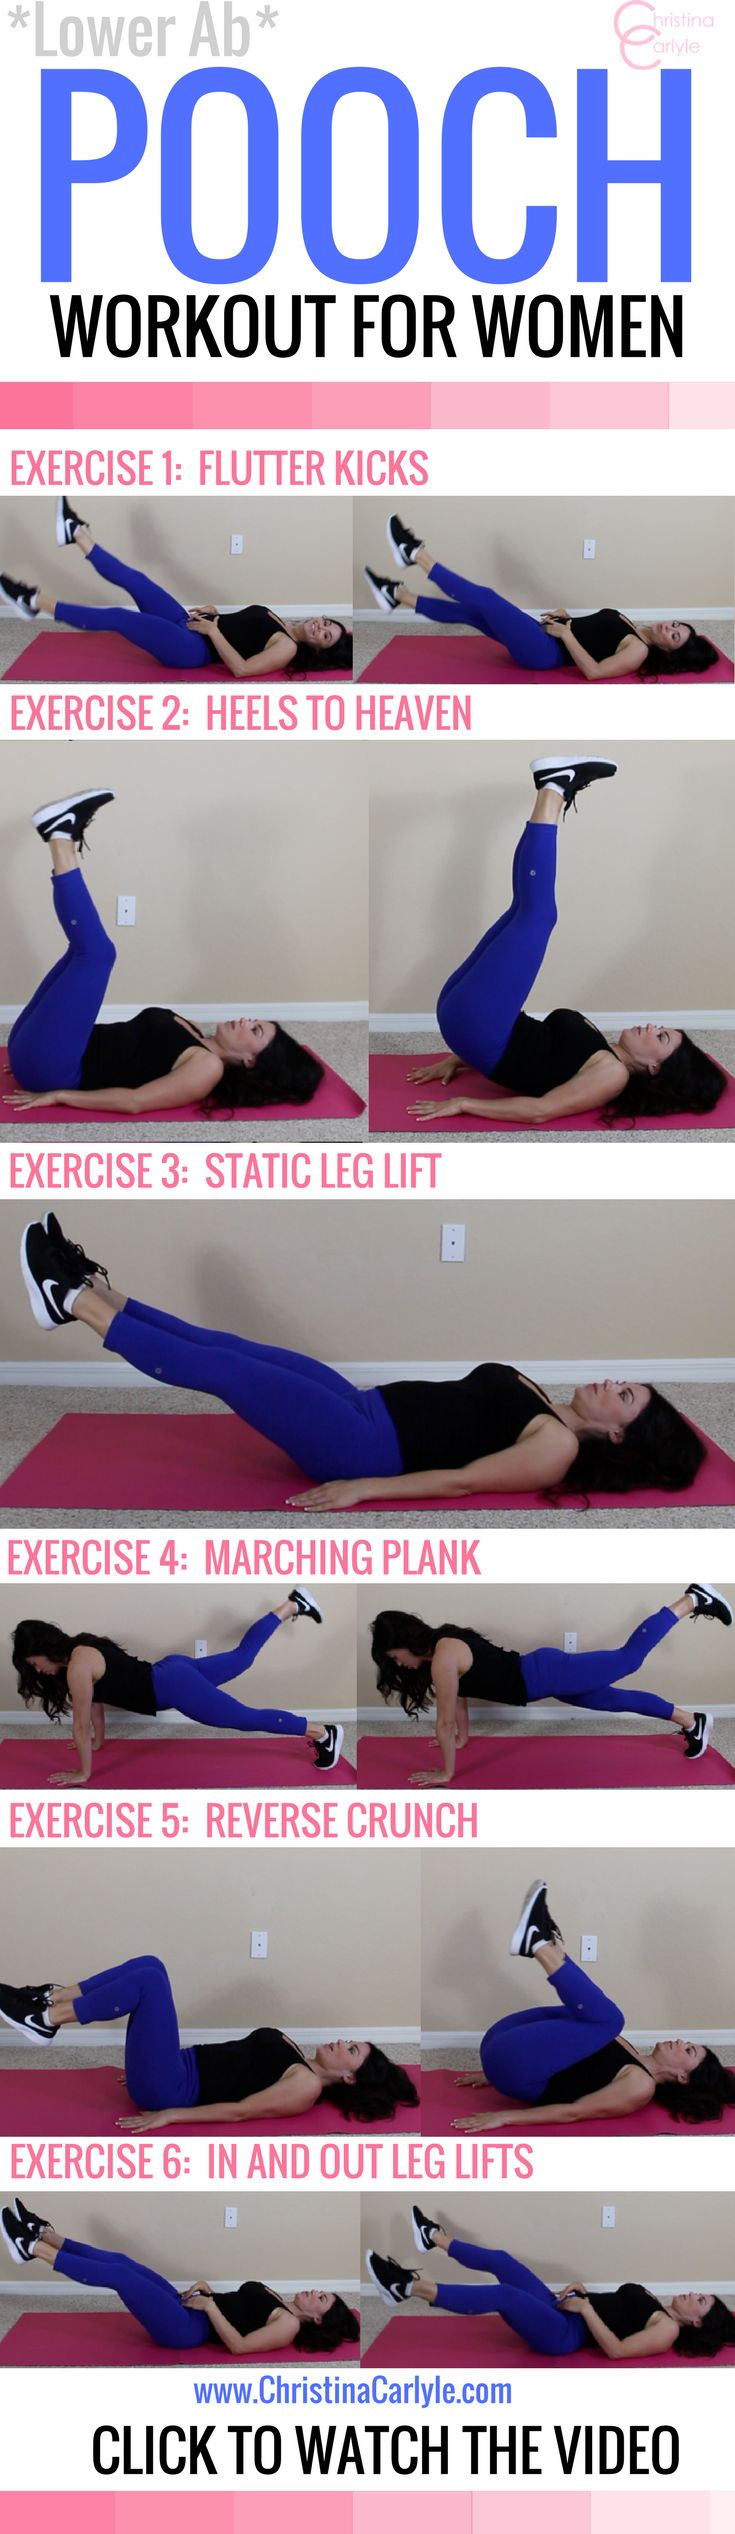 Lower ab pooch workout for women  These ab exercises help burn belly fat quickly.  You can do this ab workout at home or the gym.  This pooch fat burning workout is perfect for women who want tone abs quickly.